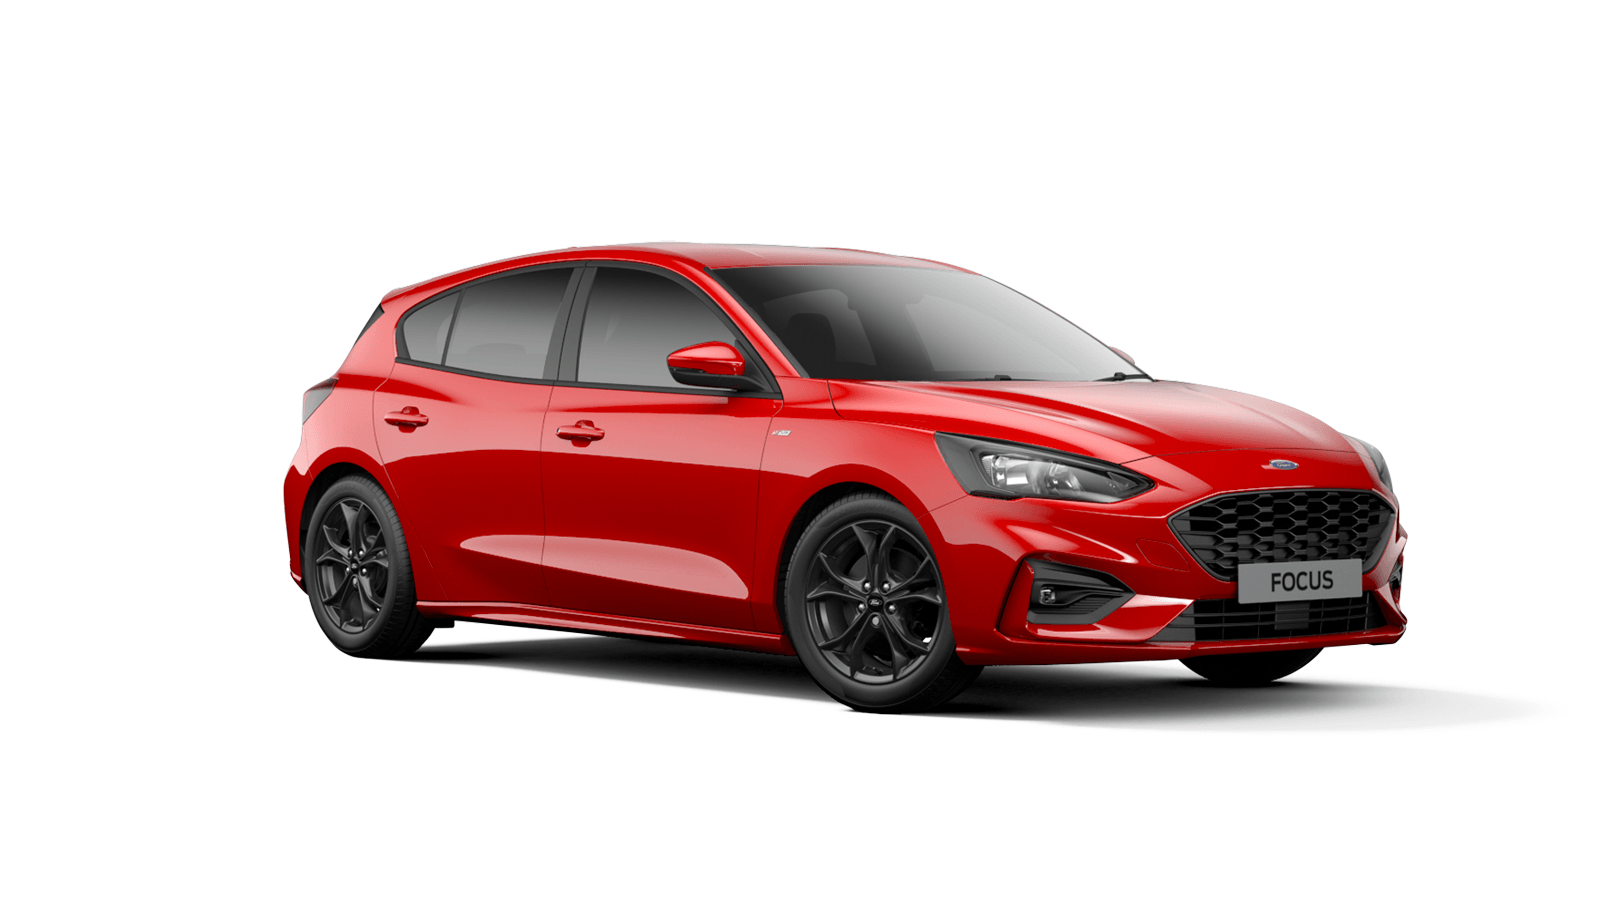 NEW FOCUS ST-Line 5 Door in Race Red